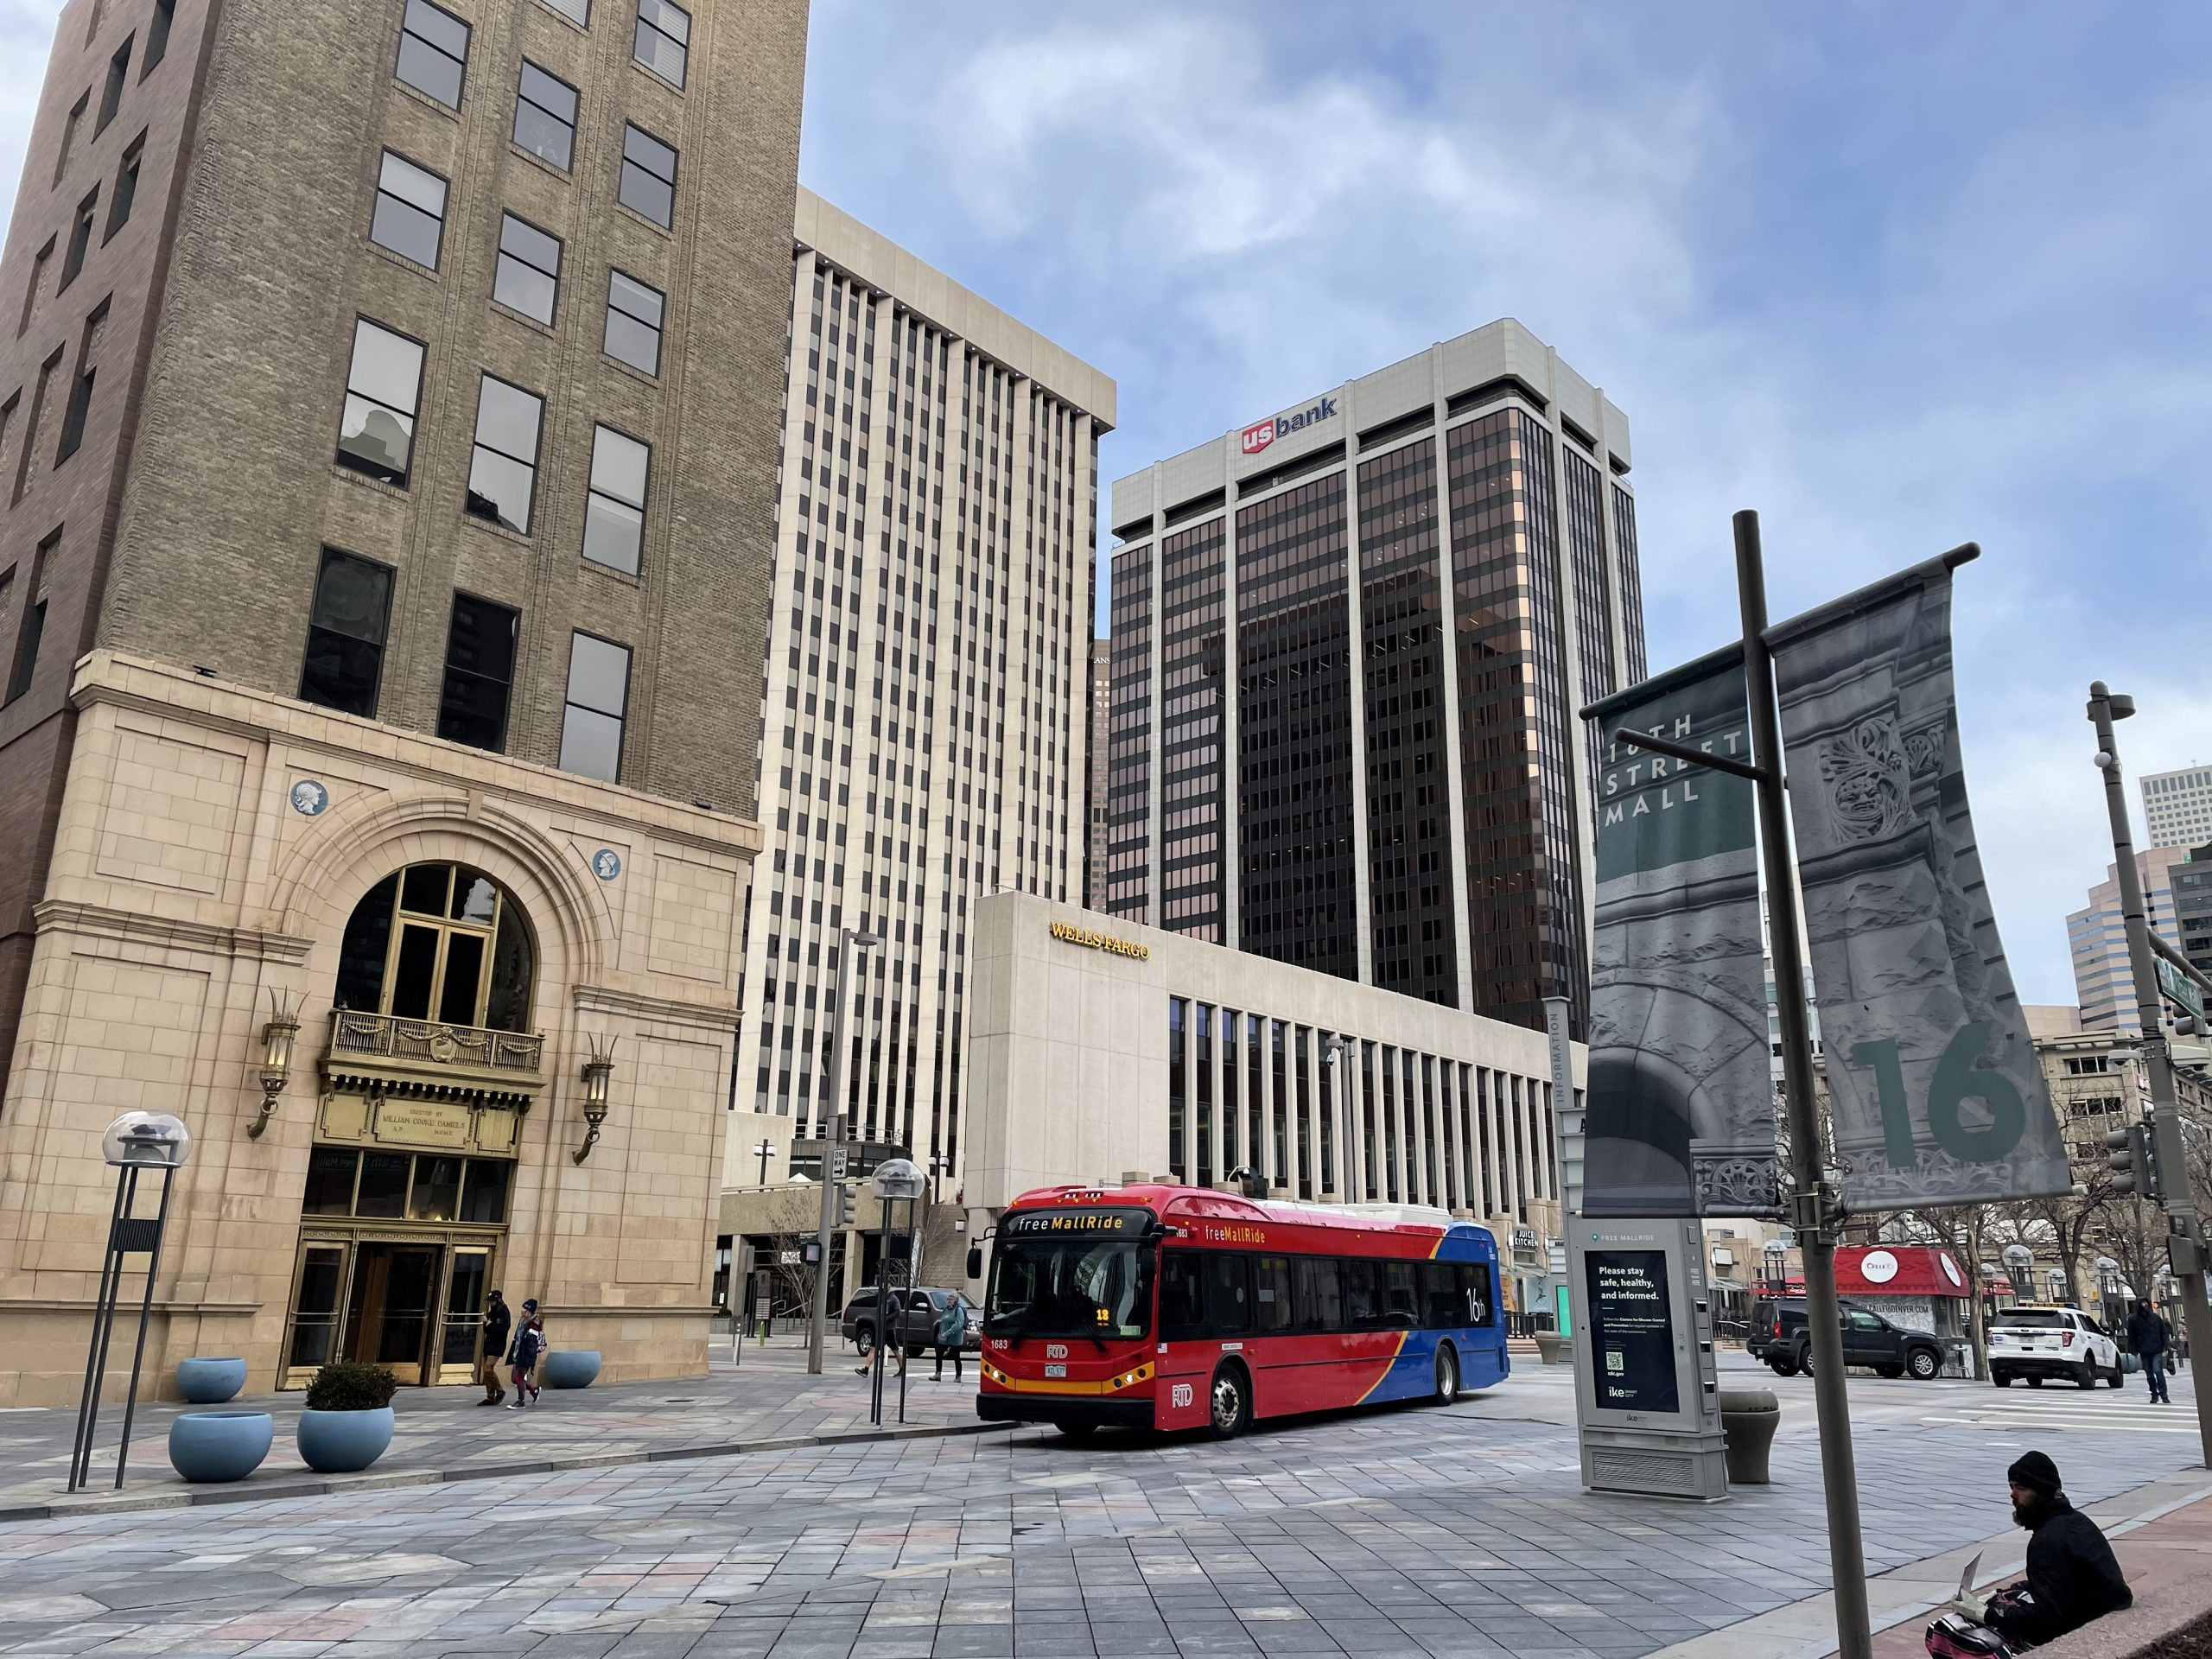 16th Street Mall Renovation Brings New Opportunities